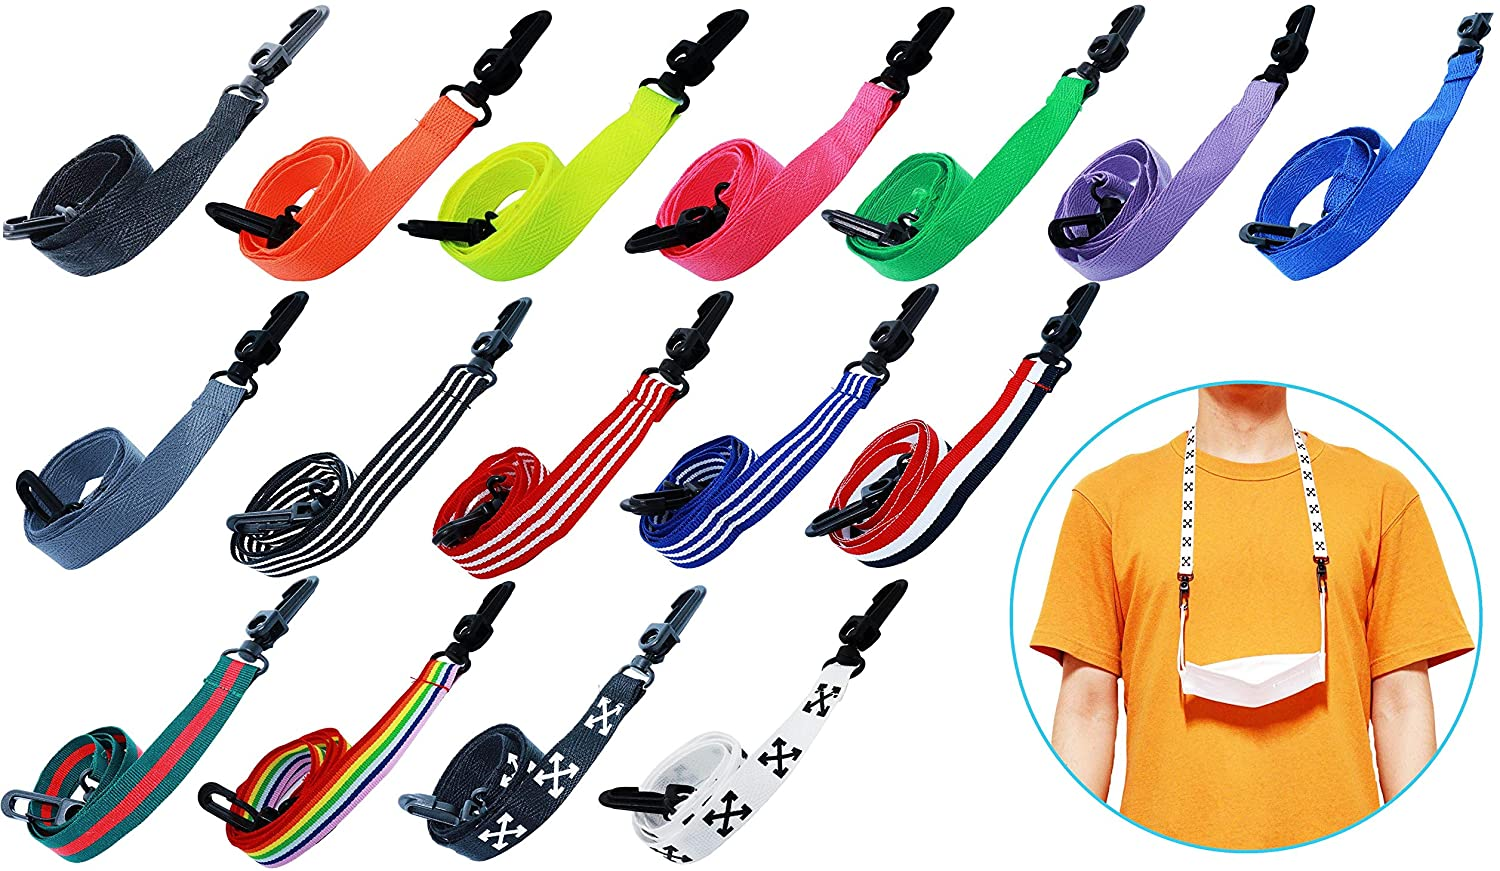 Scone - 1pc, 3pcs - 32types Face Mask Lanyard with Safe Plastic Clips - 2sizes Adjustable for Kids and Adults -16 Designs - Neon Orange - Mask Holder Chain Strap Anti-lost Mask Lanyard